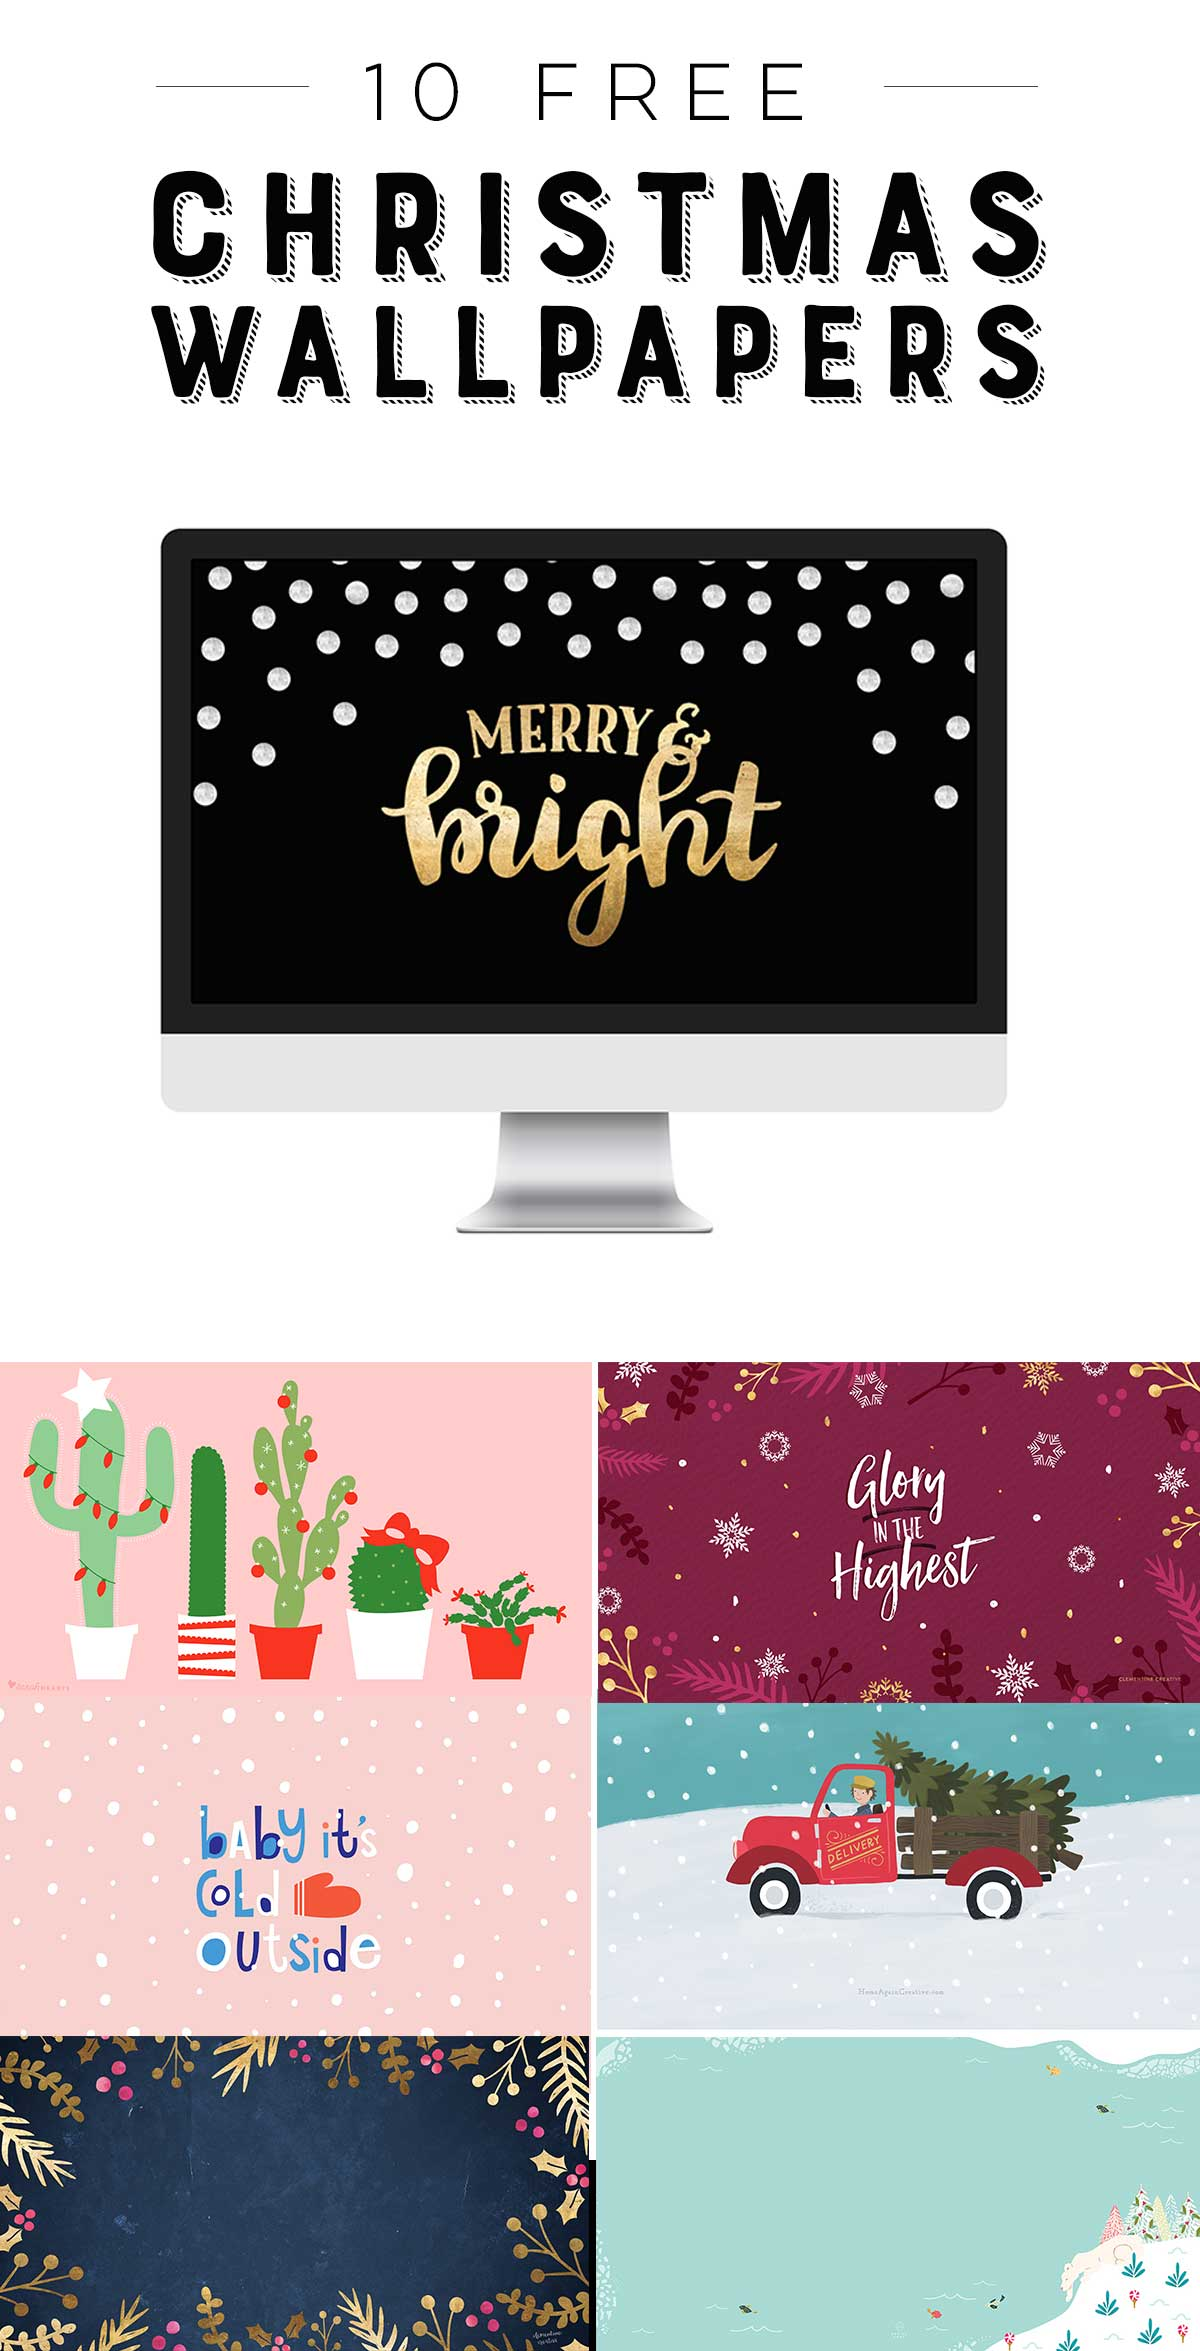 10 free Christmas wallpapers for your desktop and phone